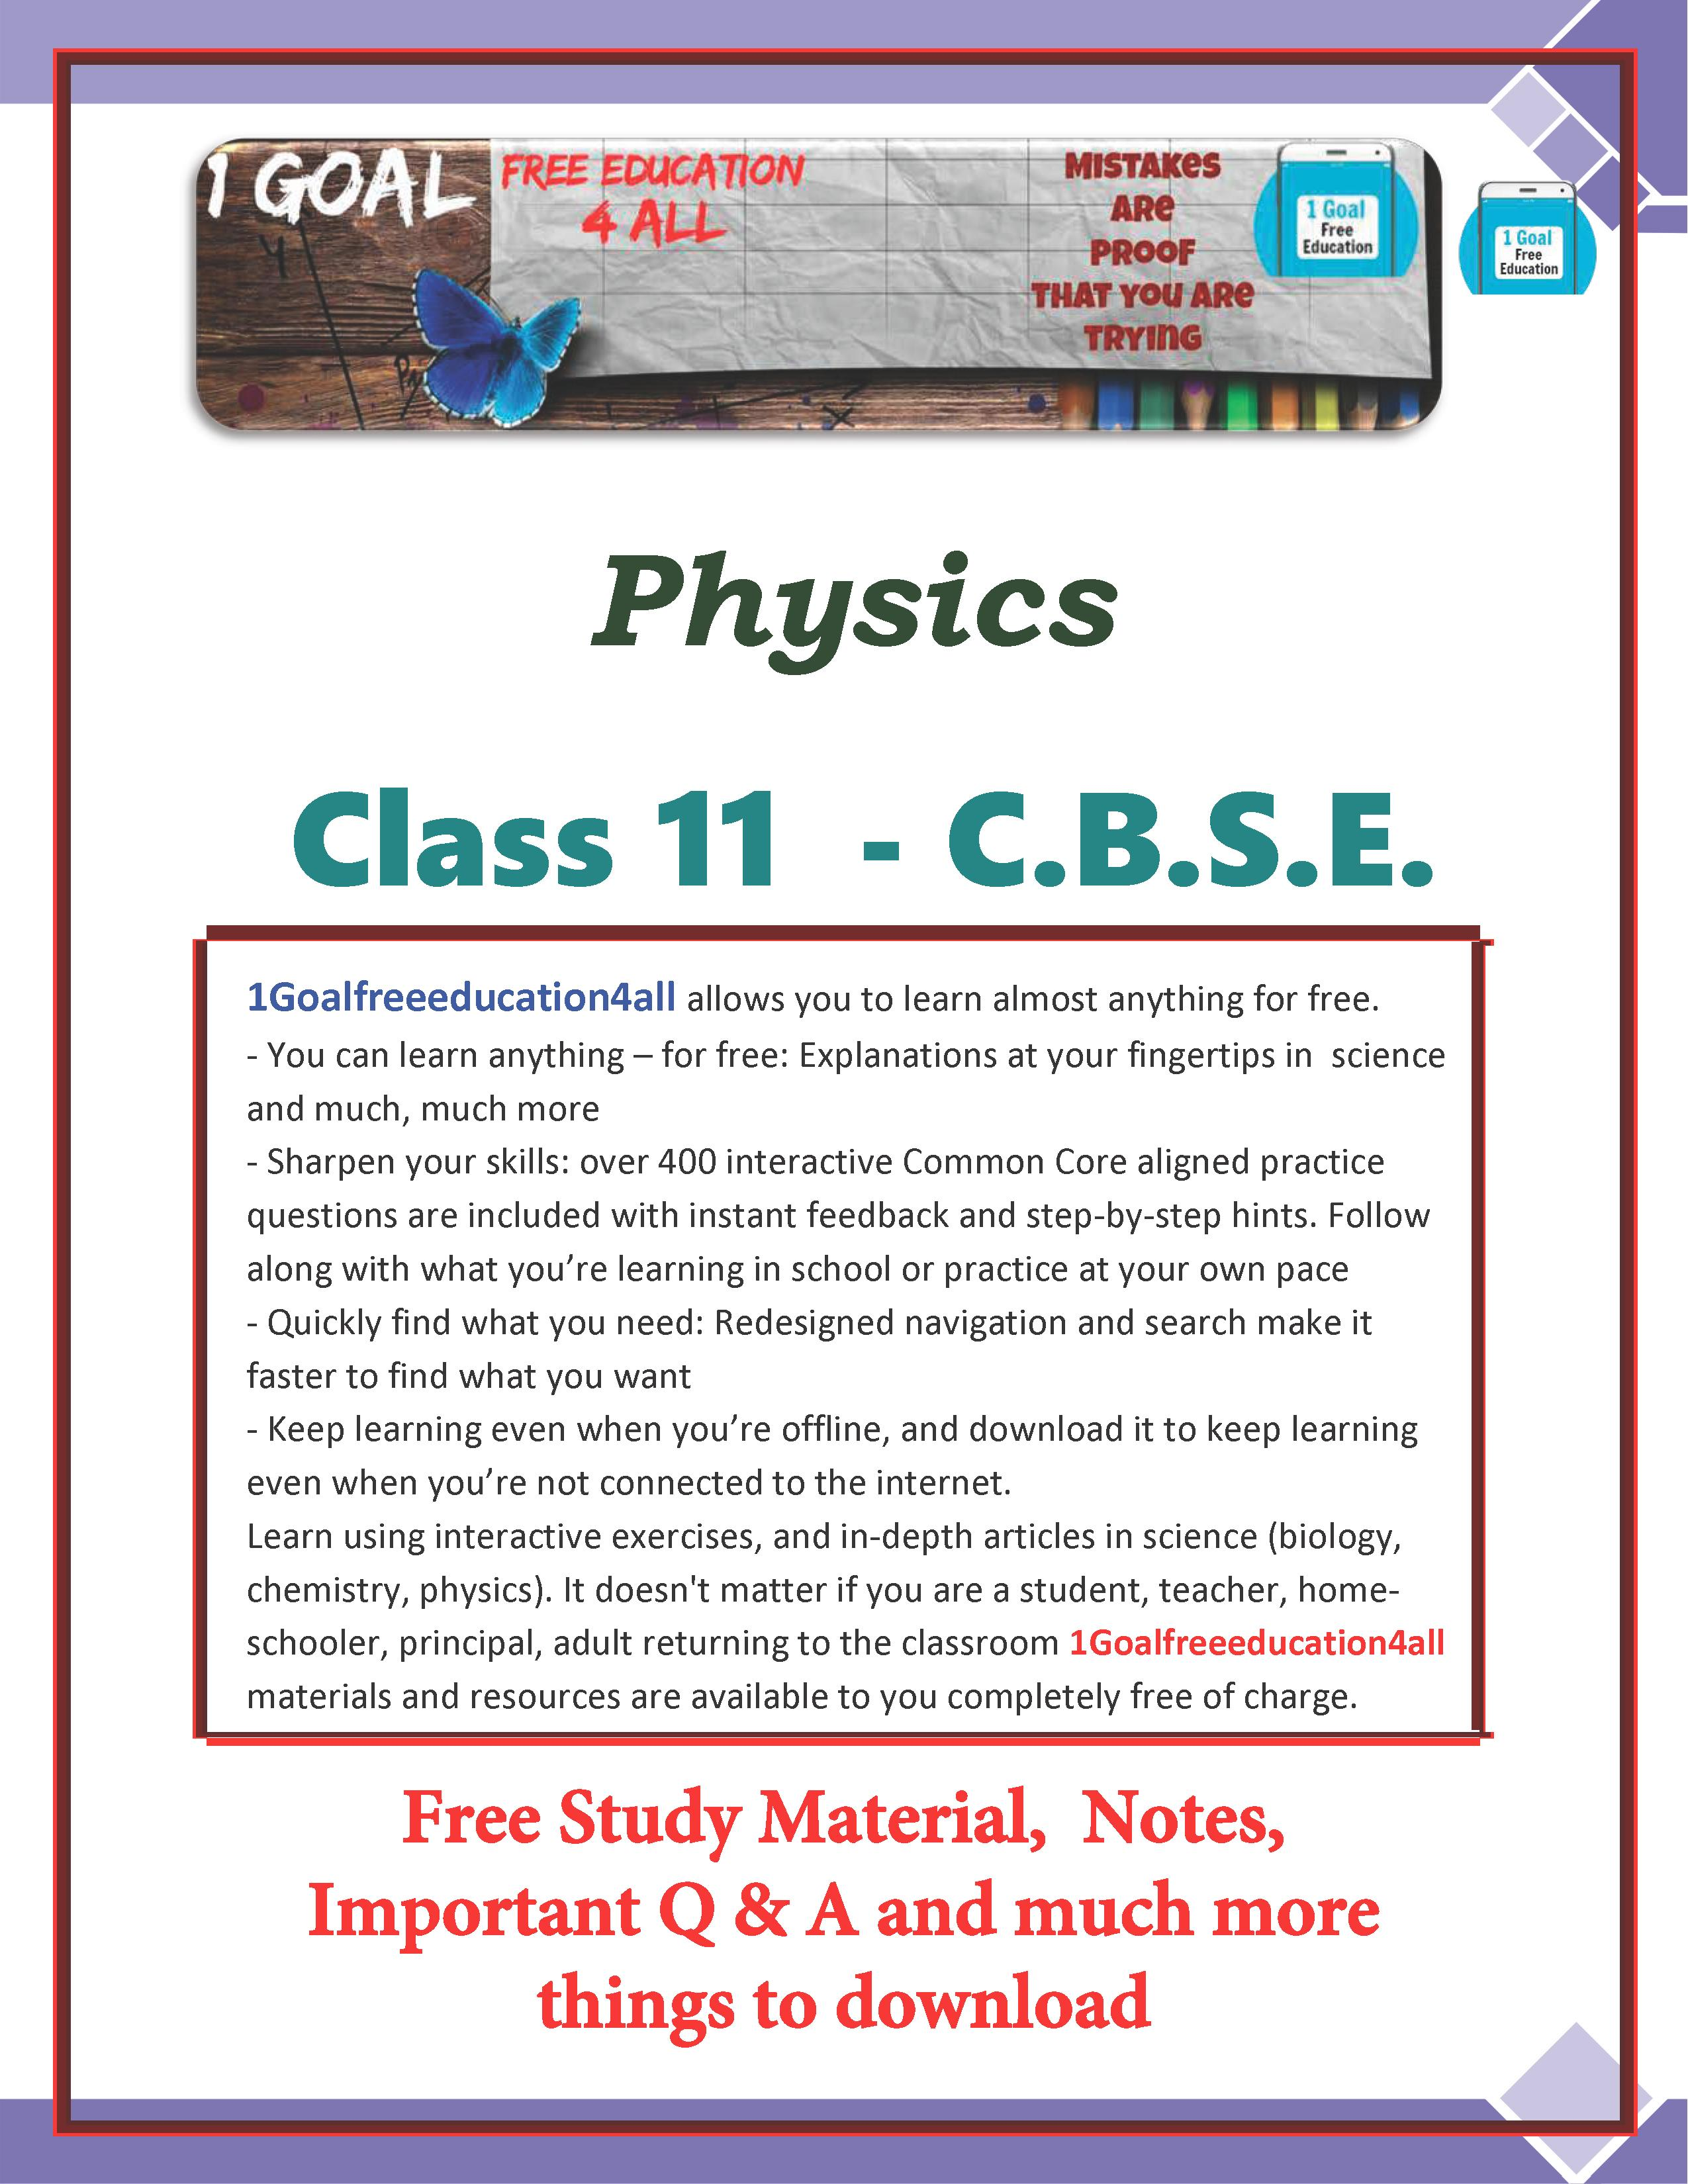 Physics Class-11 for Android - APK Download